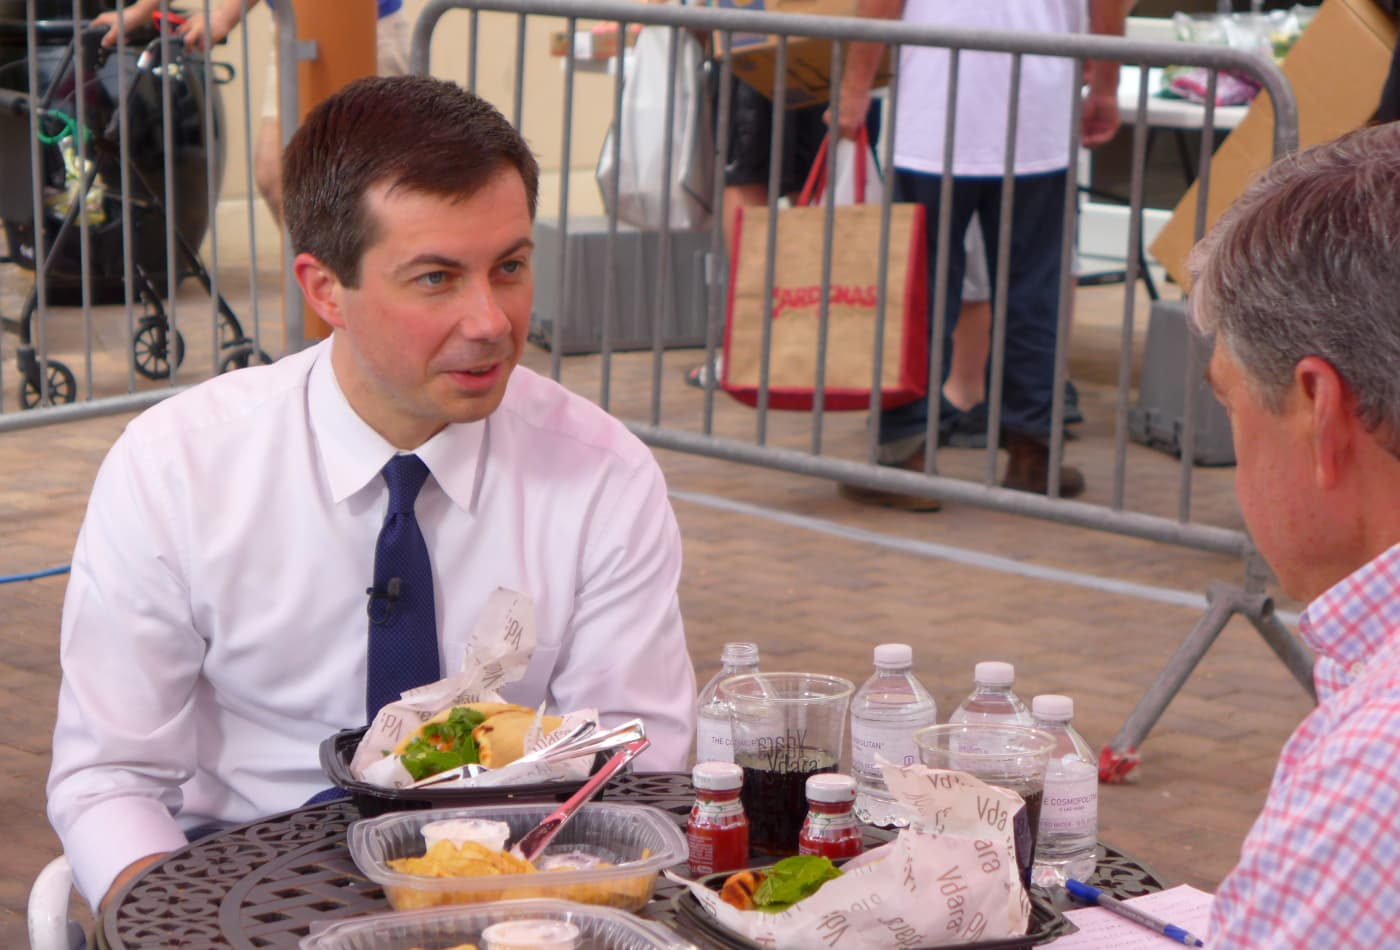 Pete Buttigieg on what it means to be a gay candidate in the 2020 field: 'I'm not running to be president for any one group'